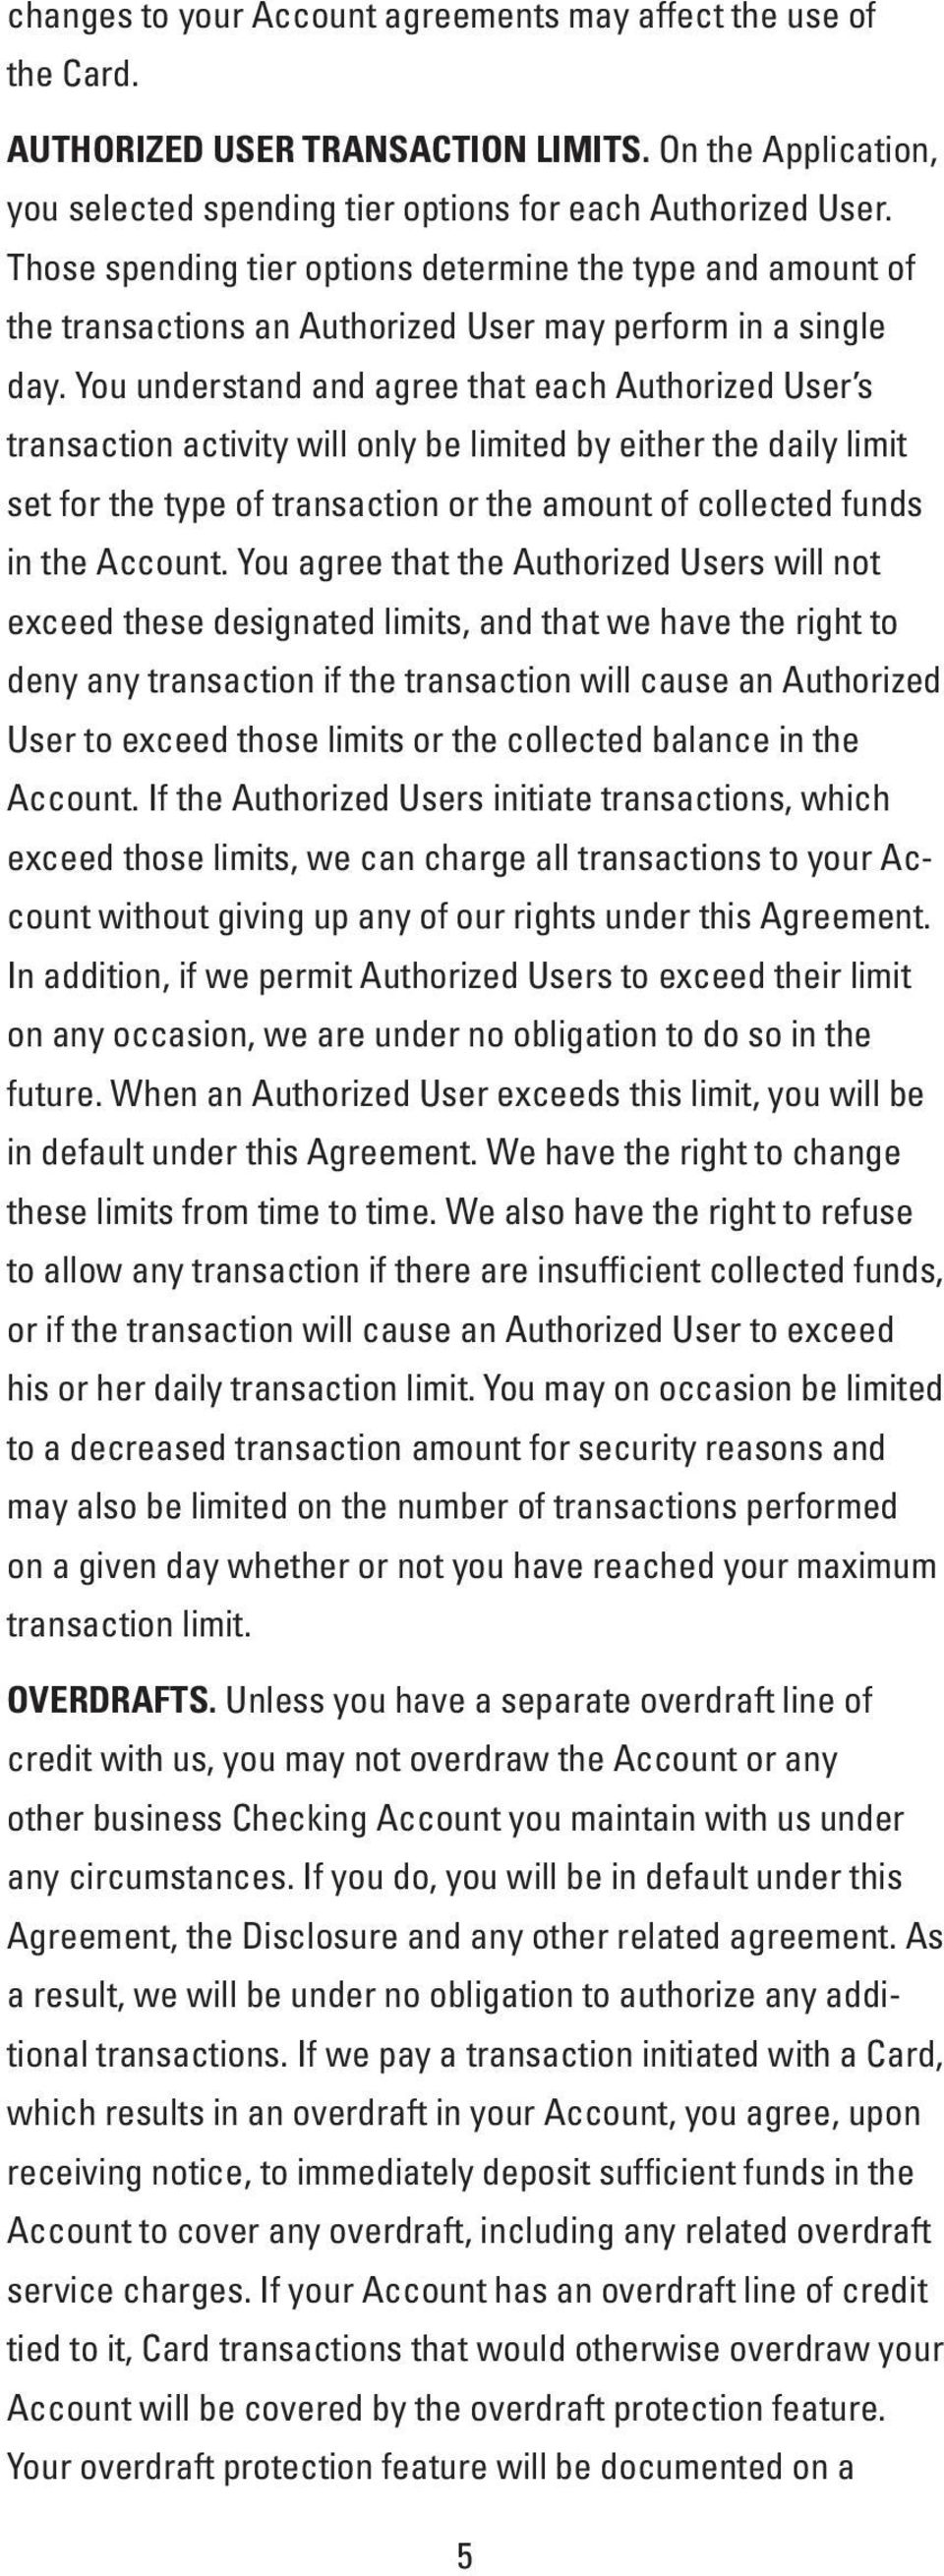 You understand and agree that each Authorized User s transaction activity will only be limited by either the daily limit set for the type of transaction or the amount of collected funds in the